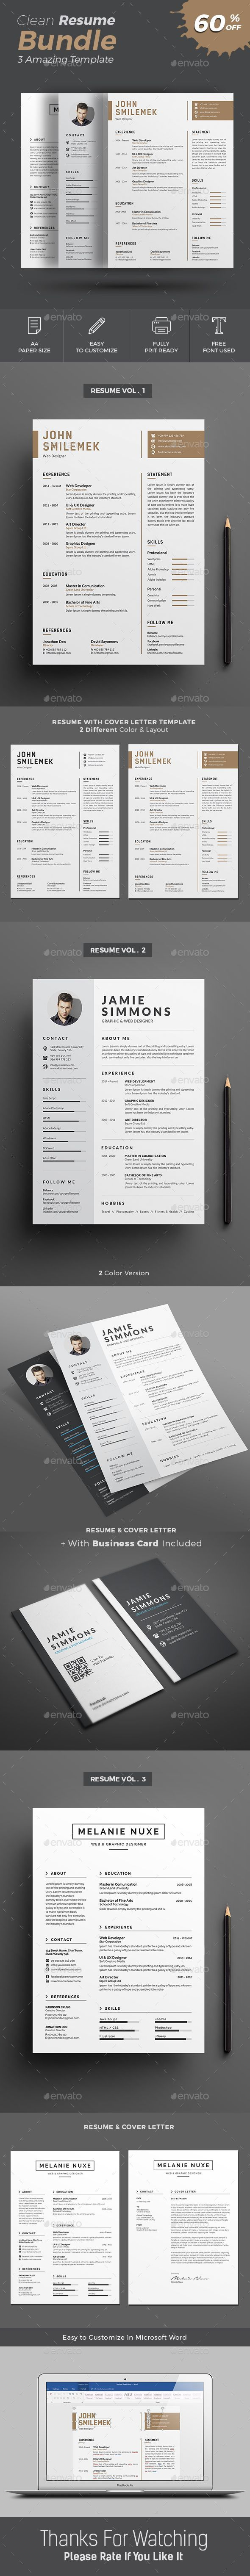 piece Infographic Resume CV Resumes Stationery Brown